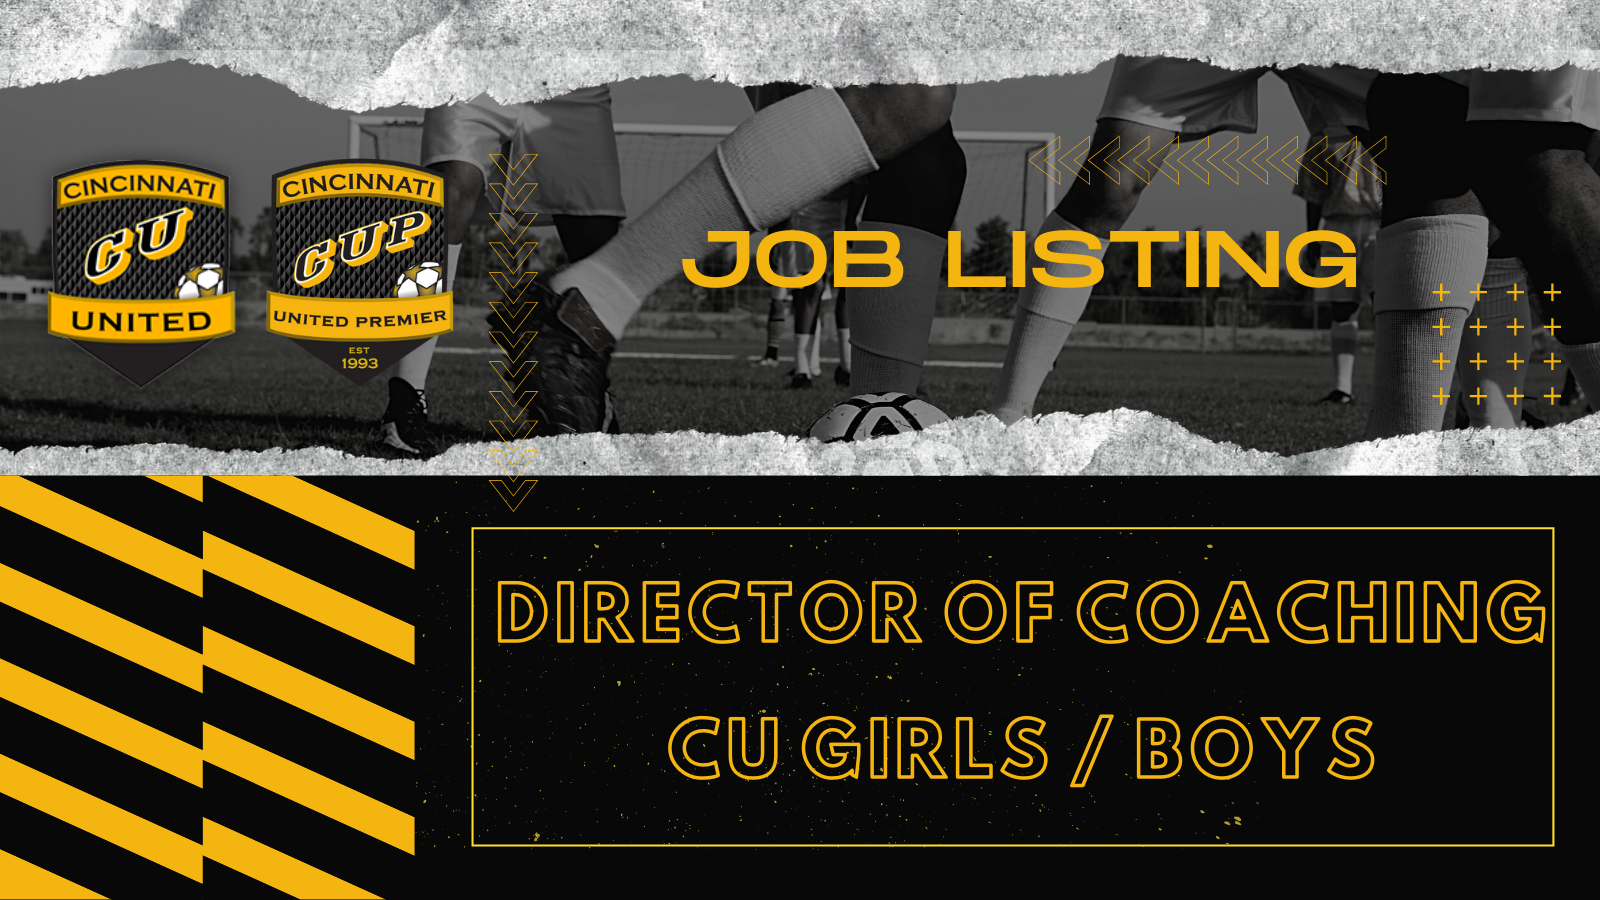 Job Listing: Director of Coaching CU Girls / Boys